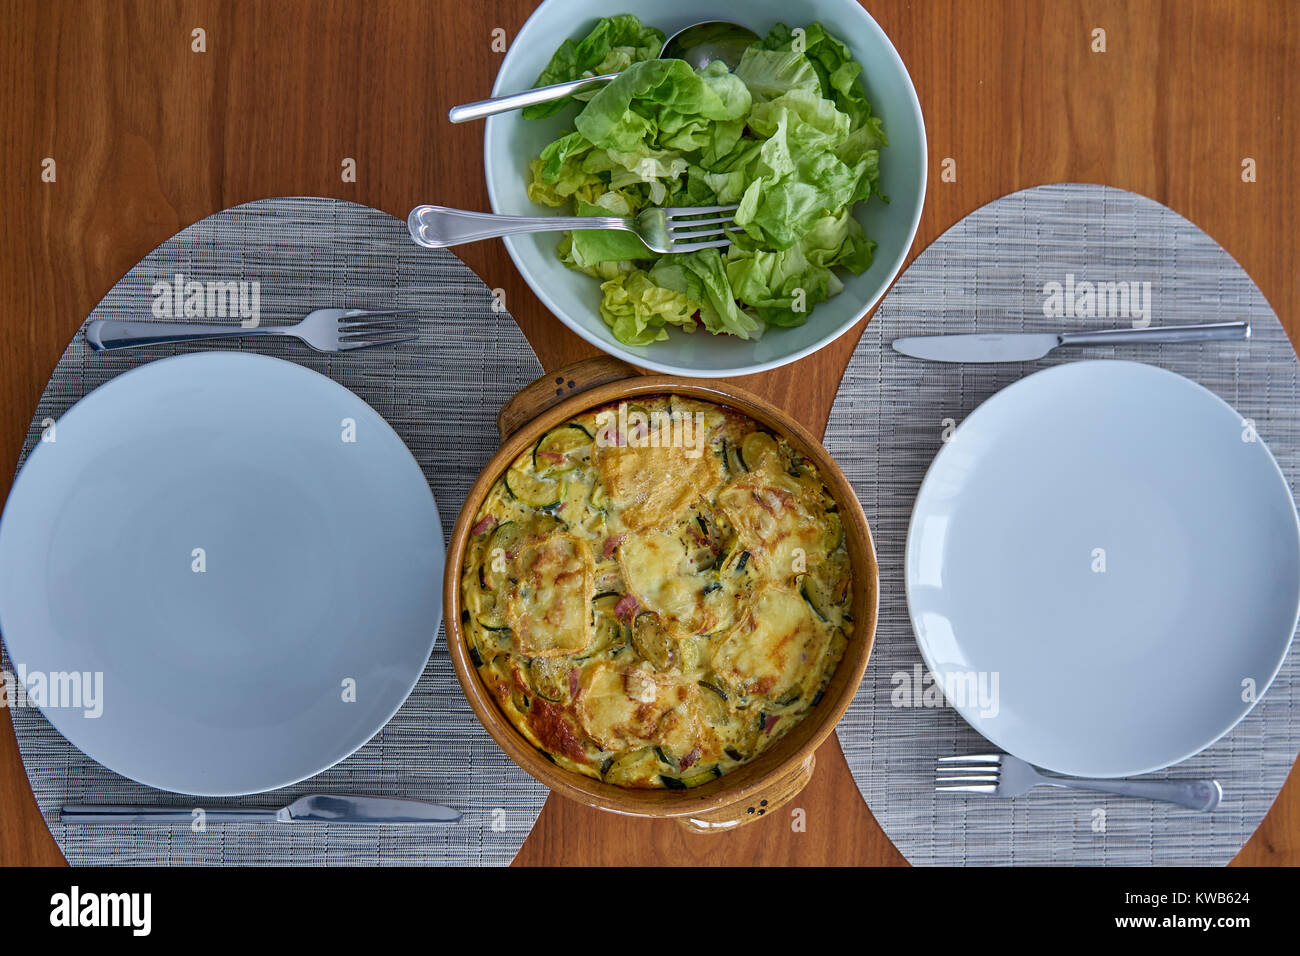 Zucchini Flan Gratined With Belgian Cheese Herve Served On a Dressed Table With Salad - Stock Image